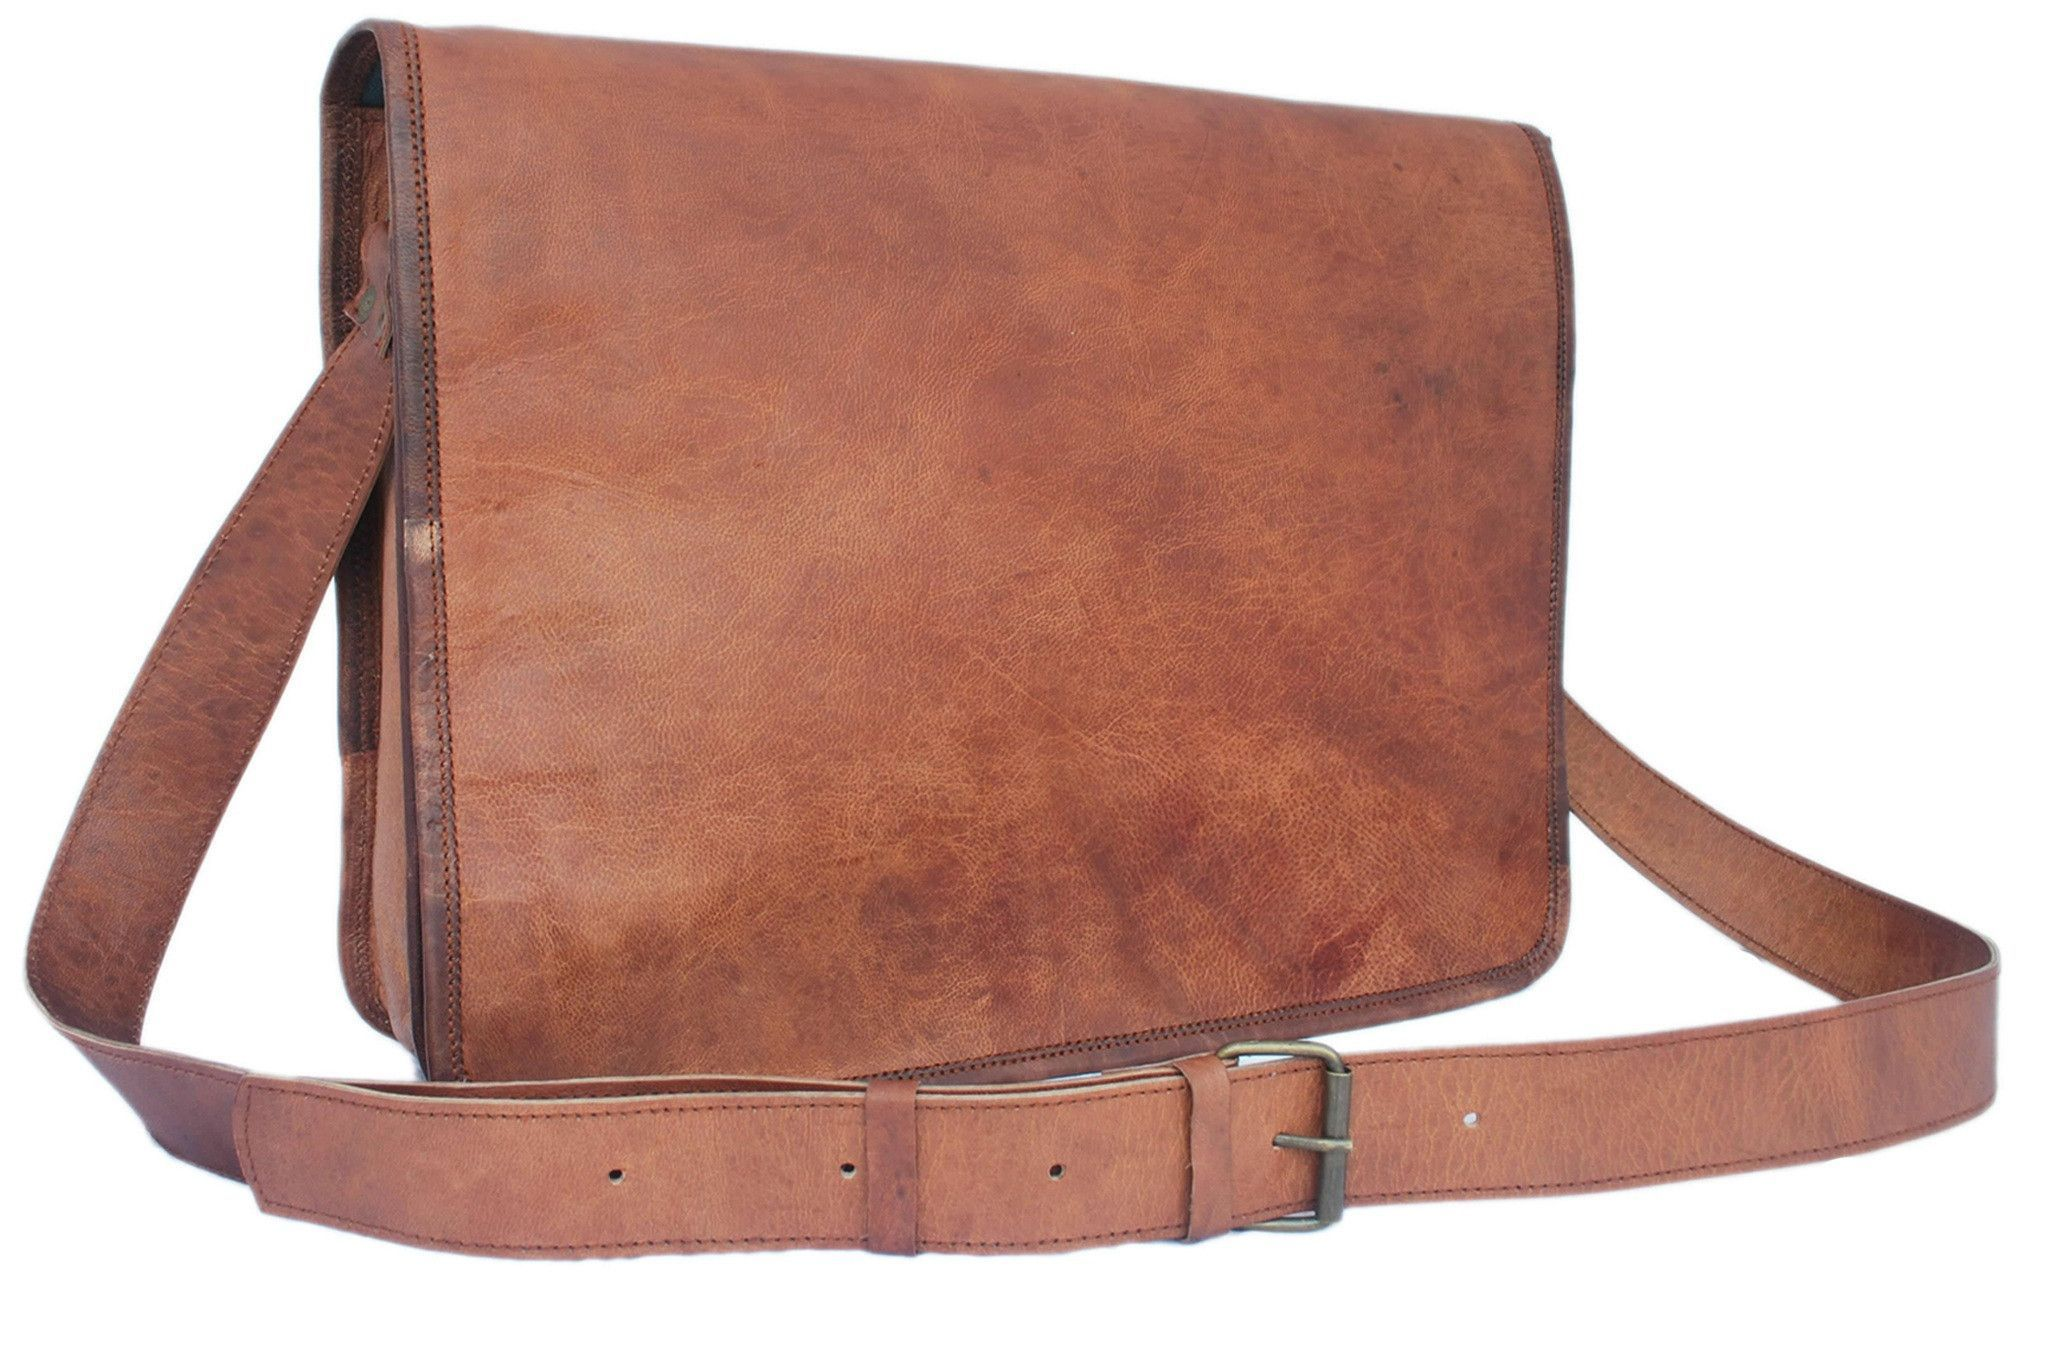 VINTAGE BROWN LEATHER MESSENGER BAG 15""